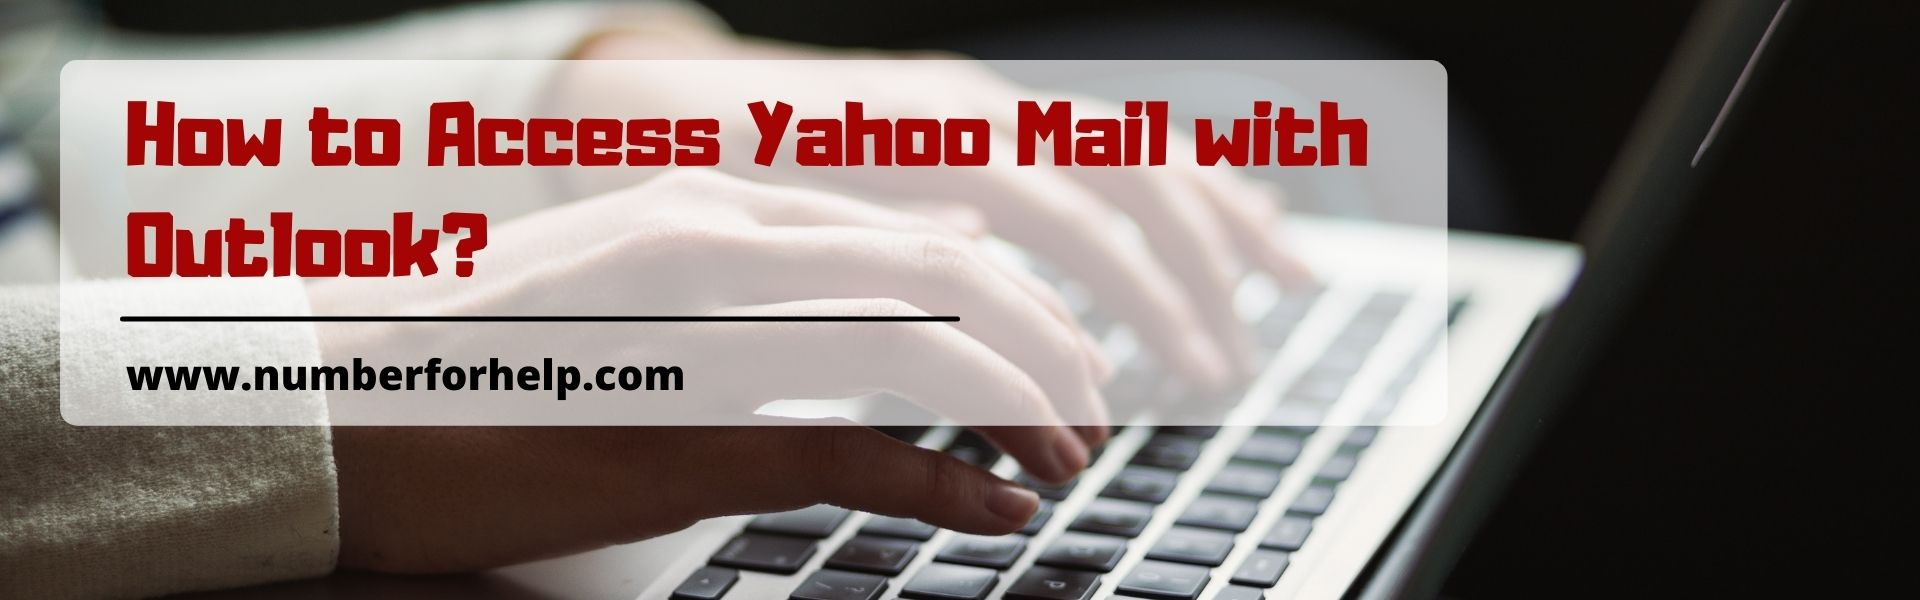 2021-02-04-02-06-29How can you access your Yahoo mail with Outlook account